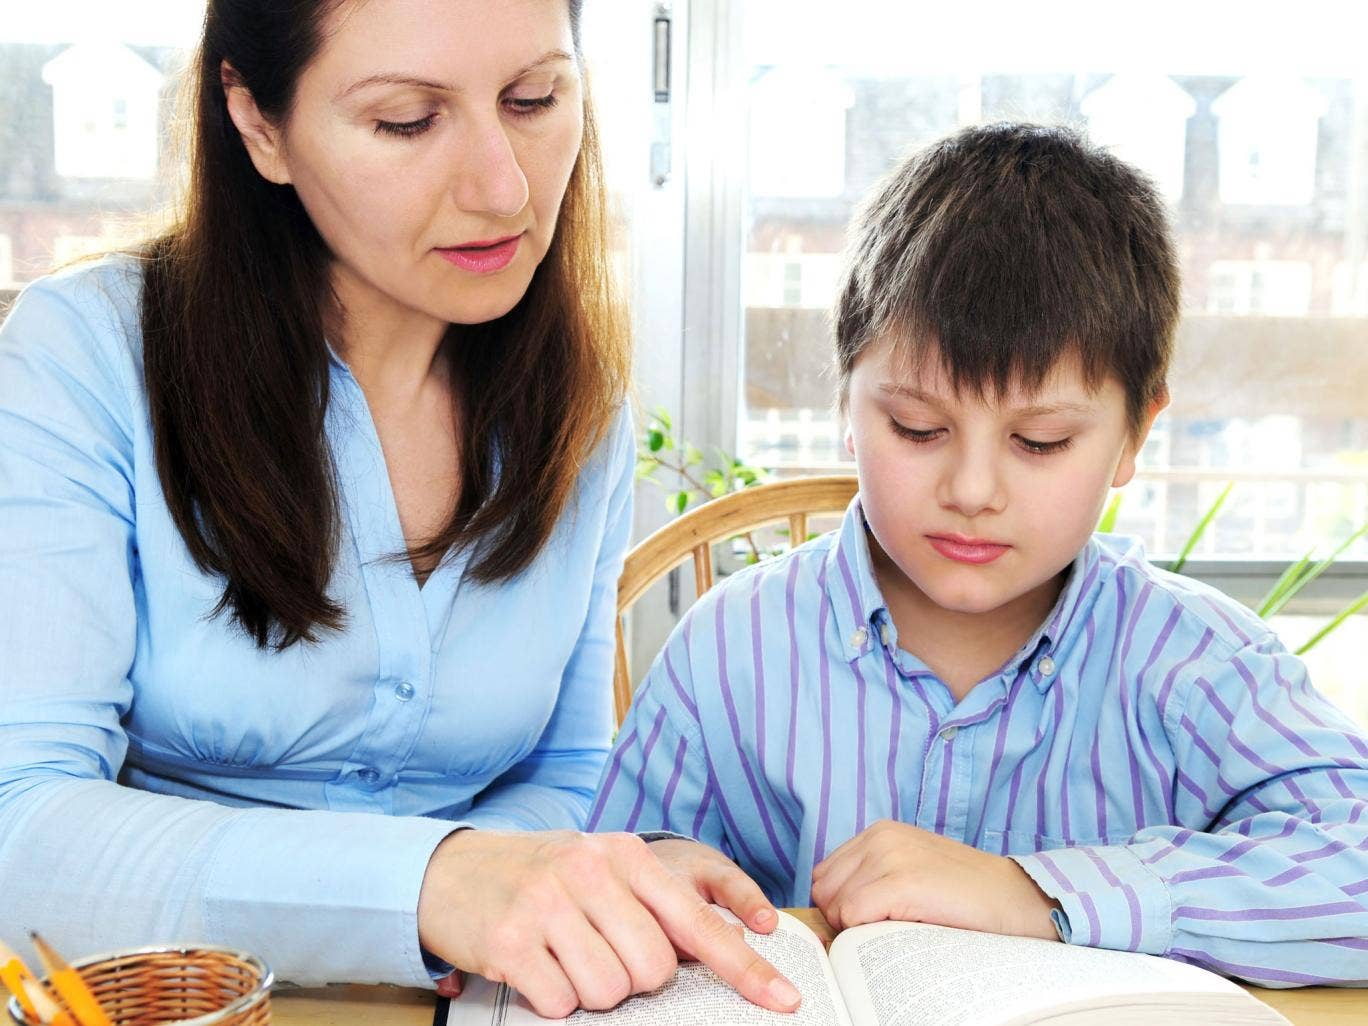 More than one in four parents plan to hire tutors during the summer holidays, according to an organisation that offers online maths tutorials